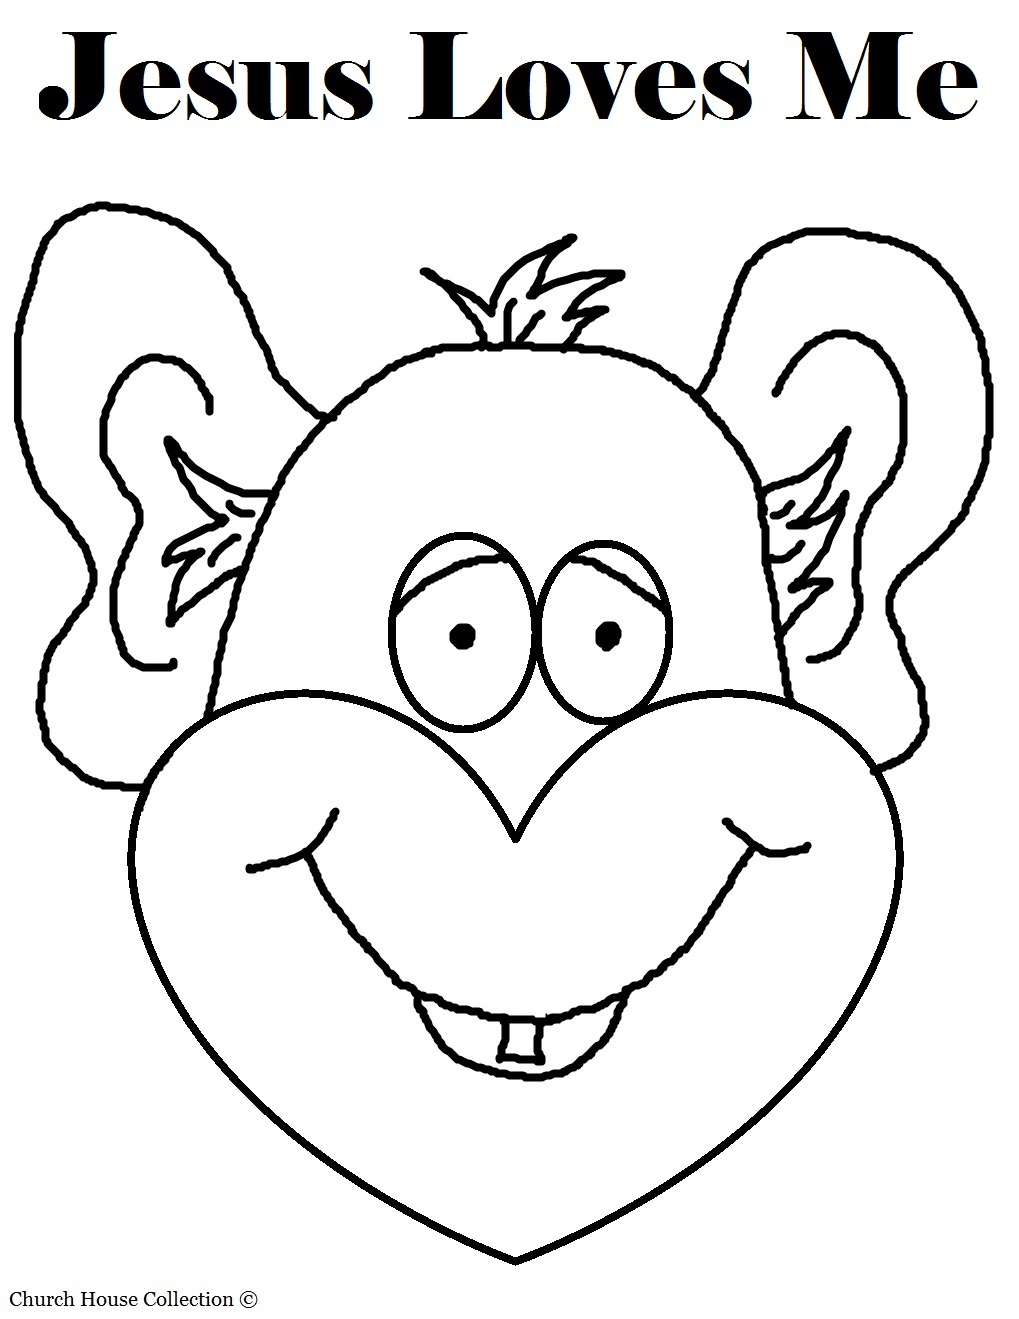 jesus loves me monkey coloring page with words